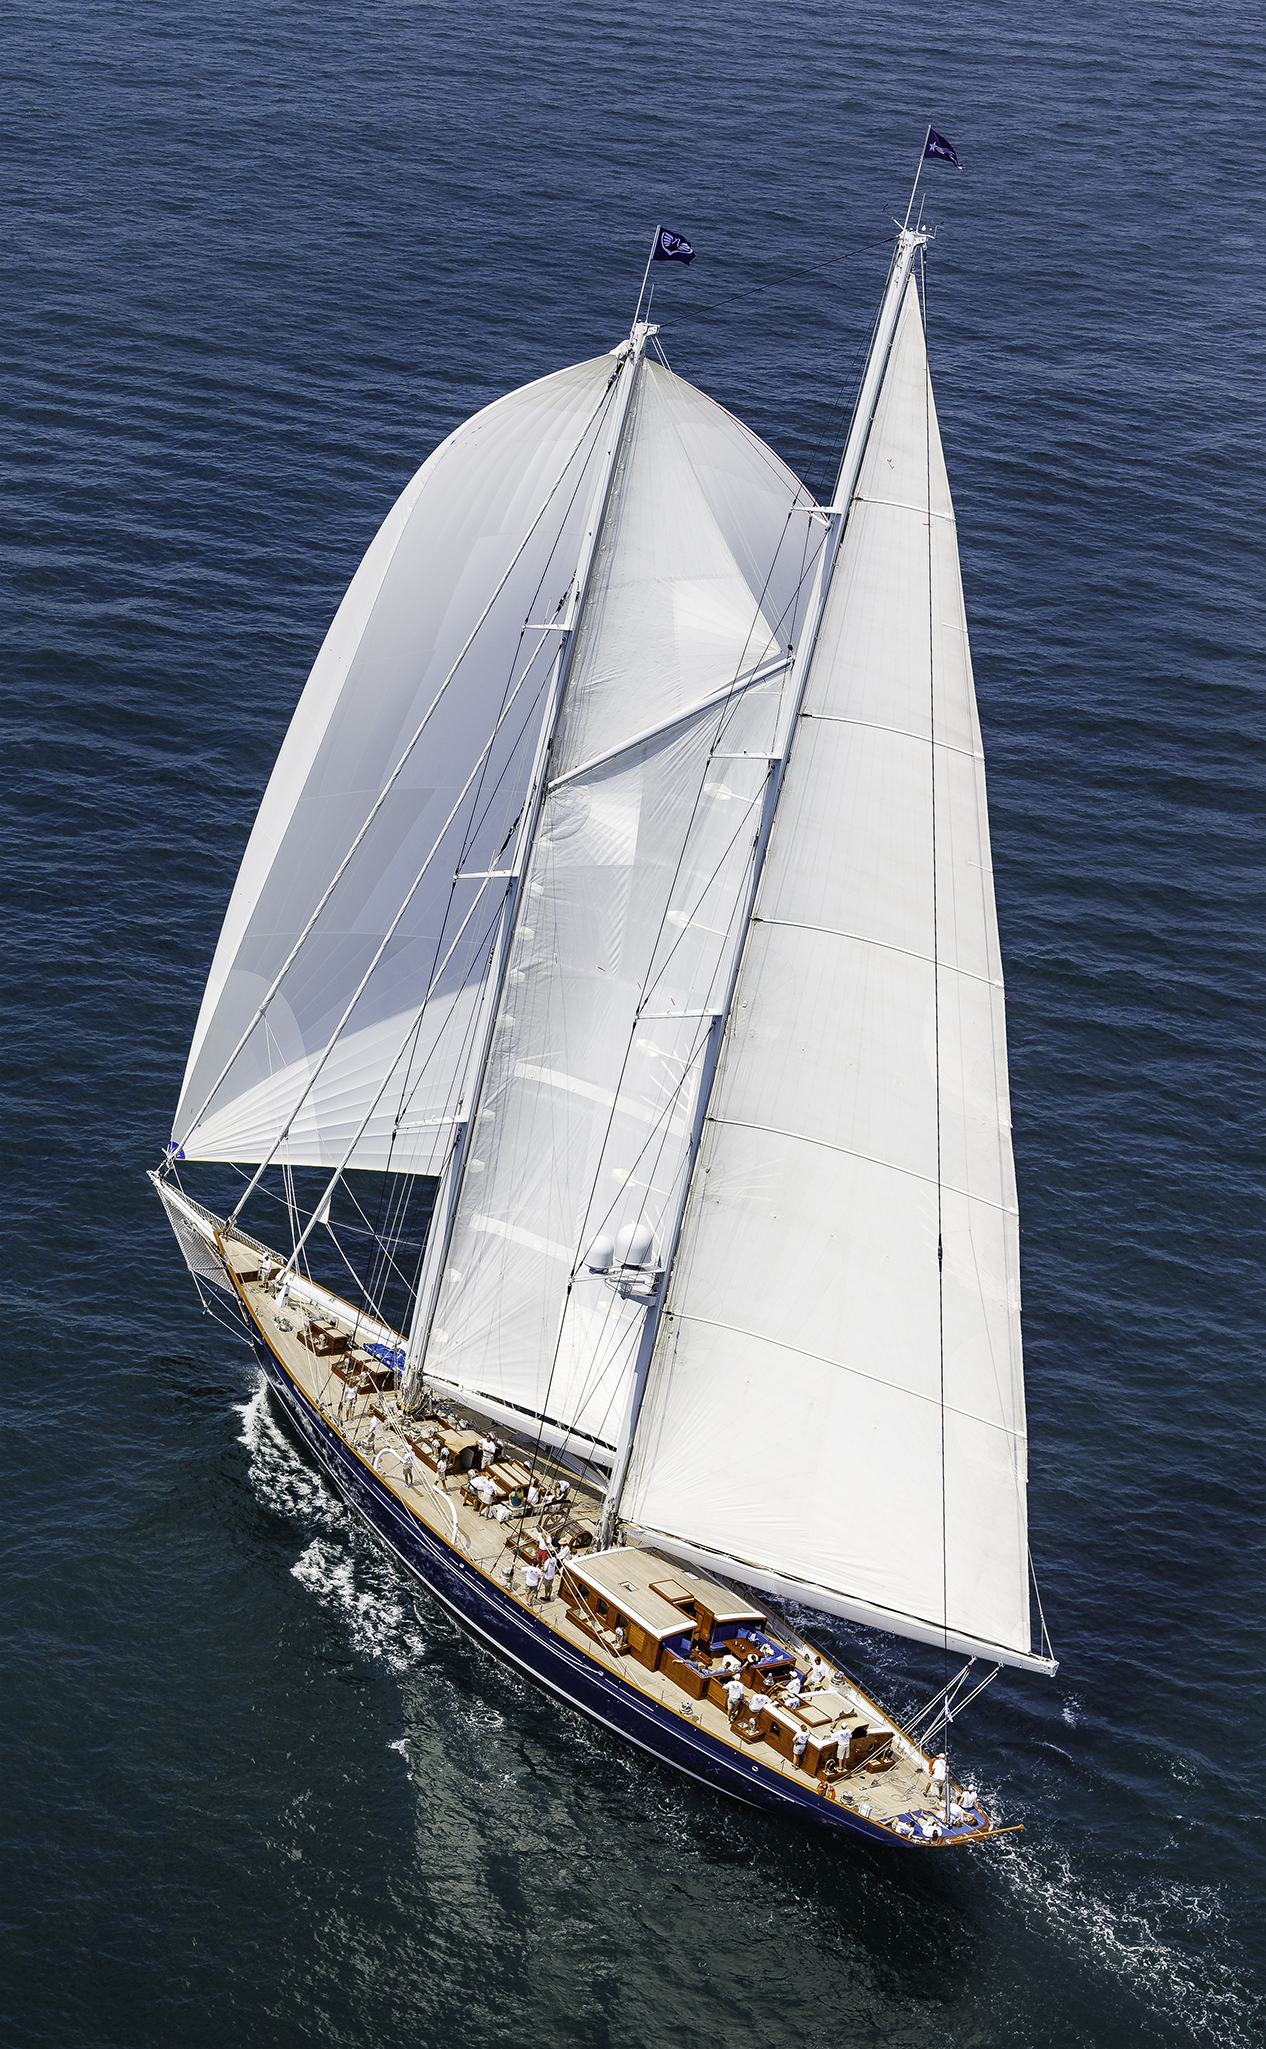 Meteor , the 170' (52 meter) schooner built by Royal Huisman and co-owned by Dan Meyers, competes in the 2016 Candy Store Cup. Photo: © Rod Harris